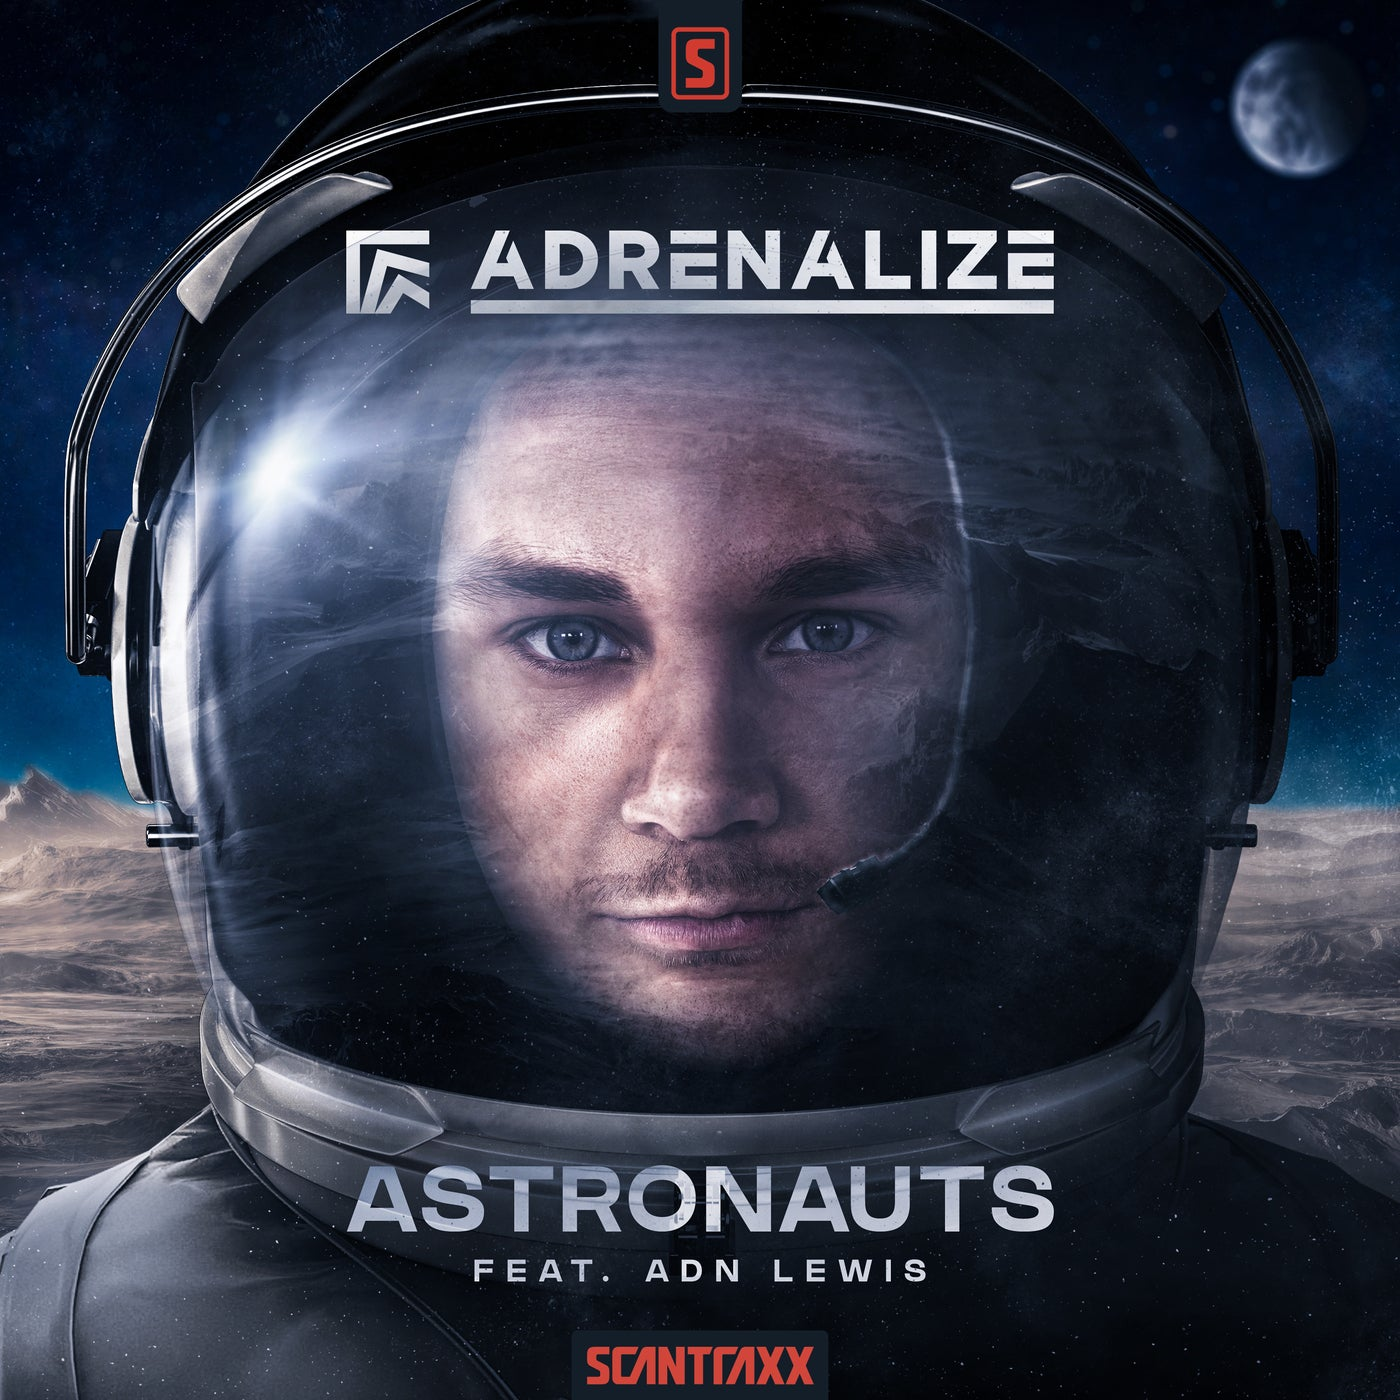 Astronauts (Original Mix)